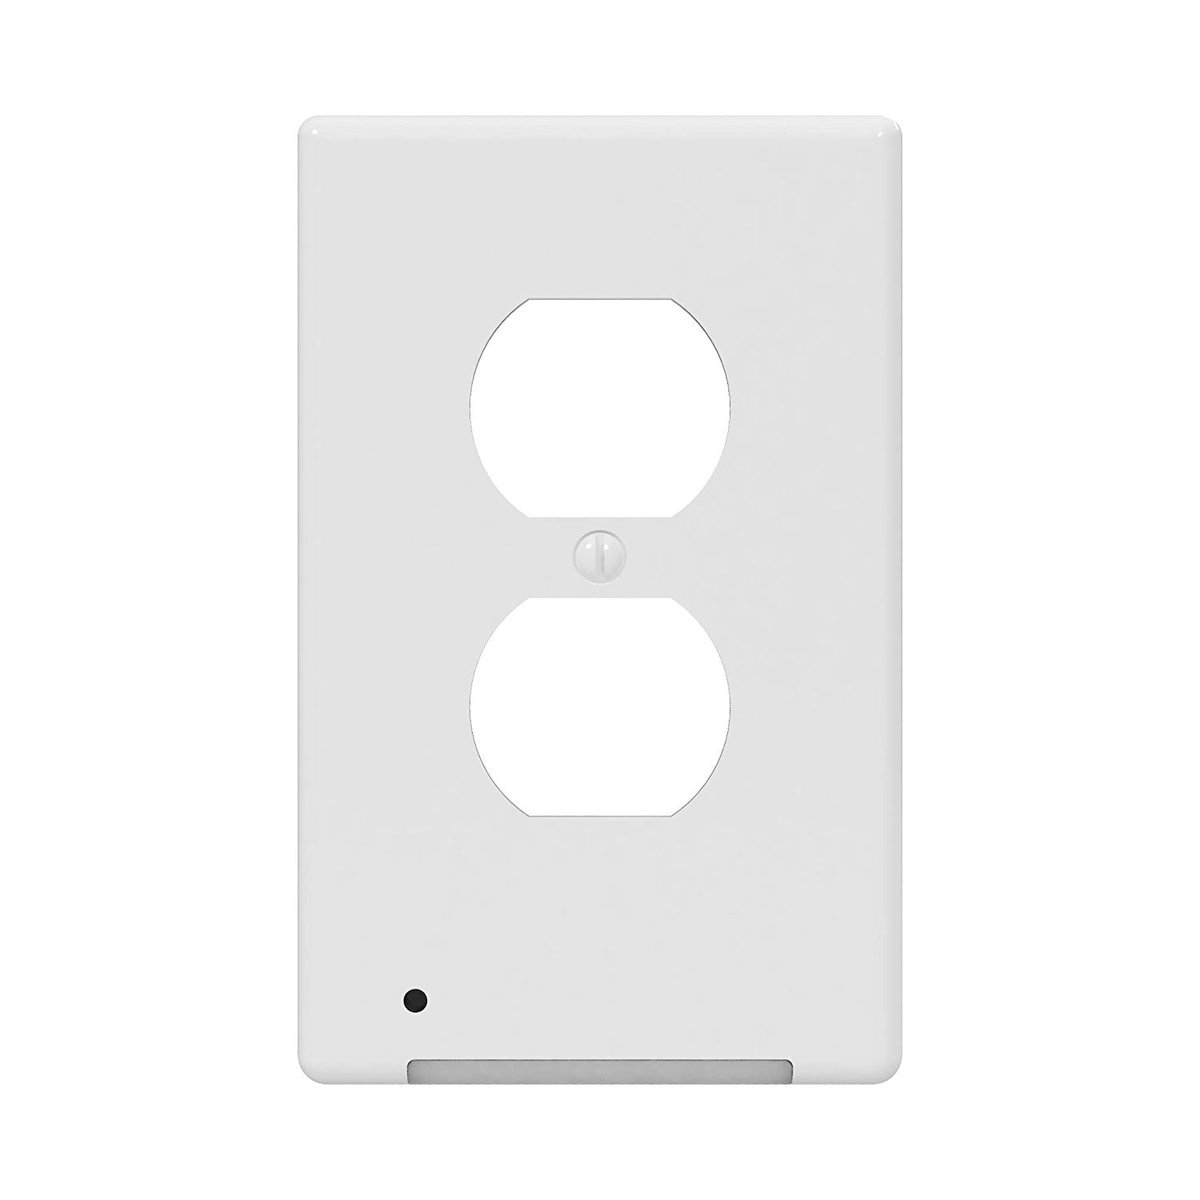 Alternative to SnapPower's innovated LED nightlights at 1/2 the price! The LEDs that activate when the room is dark are built right into the wall plate for a seamless look!  https://www.thoughtworthy.info/BlogPost/SnapPower-Alternative-at-Half-the-Price-1193…pic.twitter.com/V0VaPdk7R2